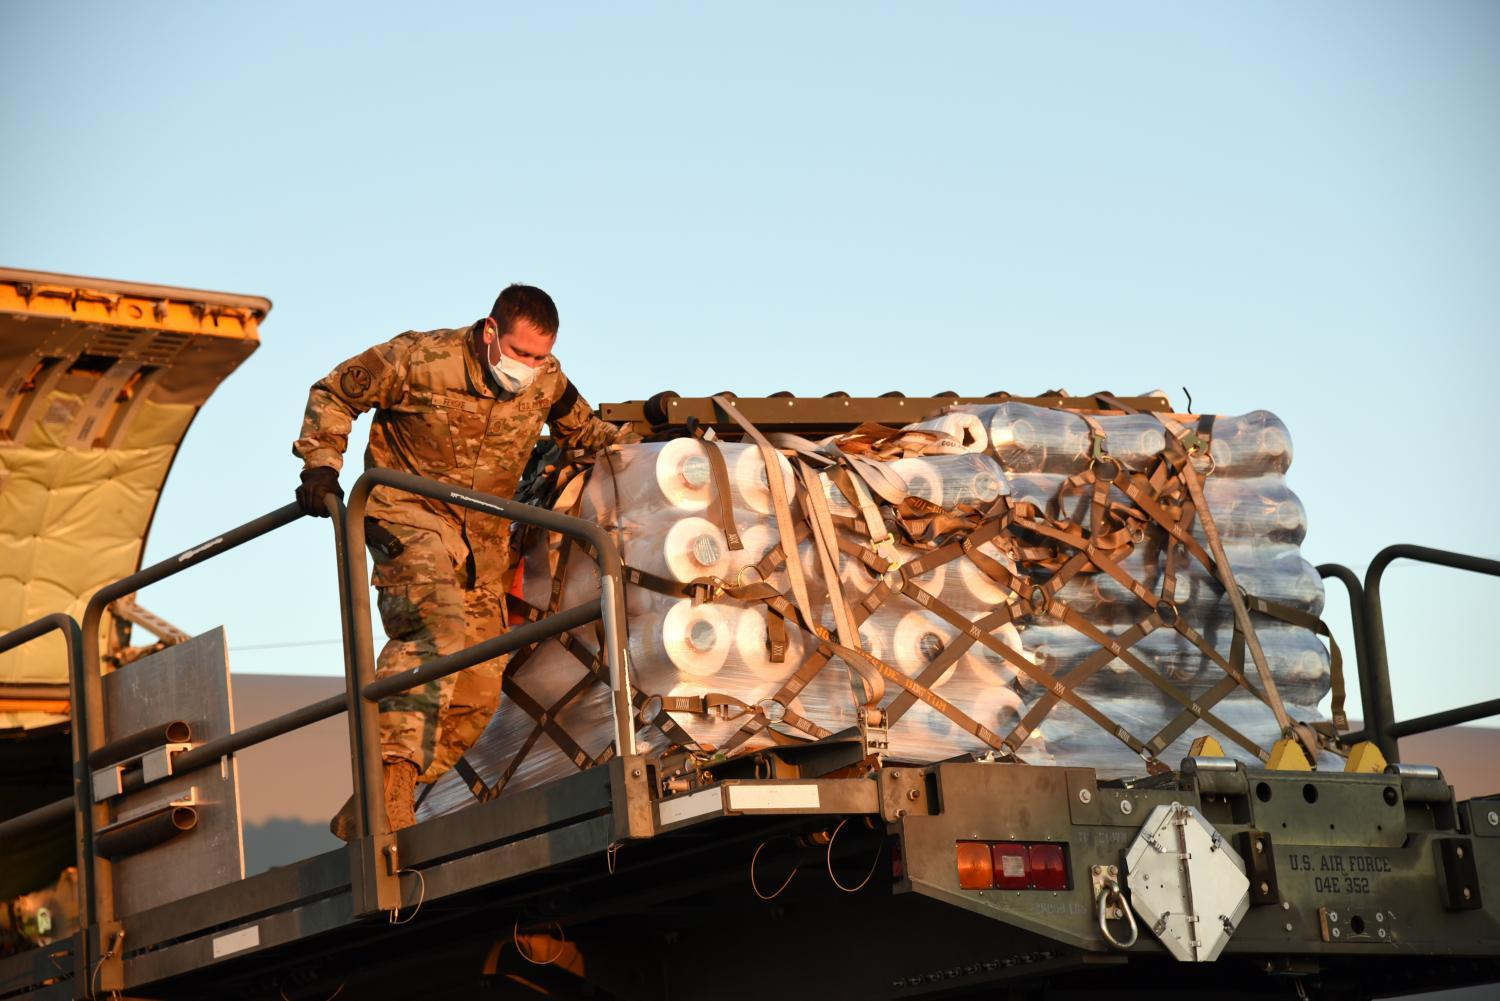 Loading PPE into an Arizona Air National Guard tanker jet.